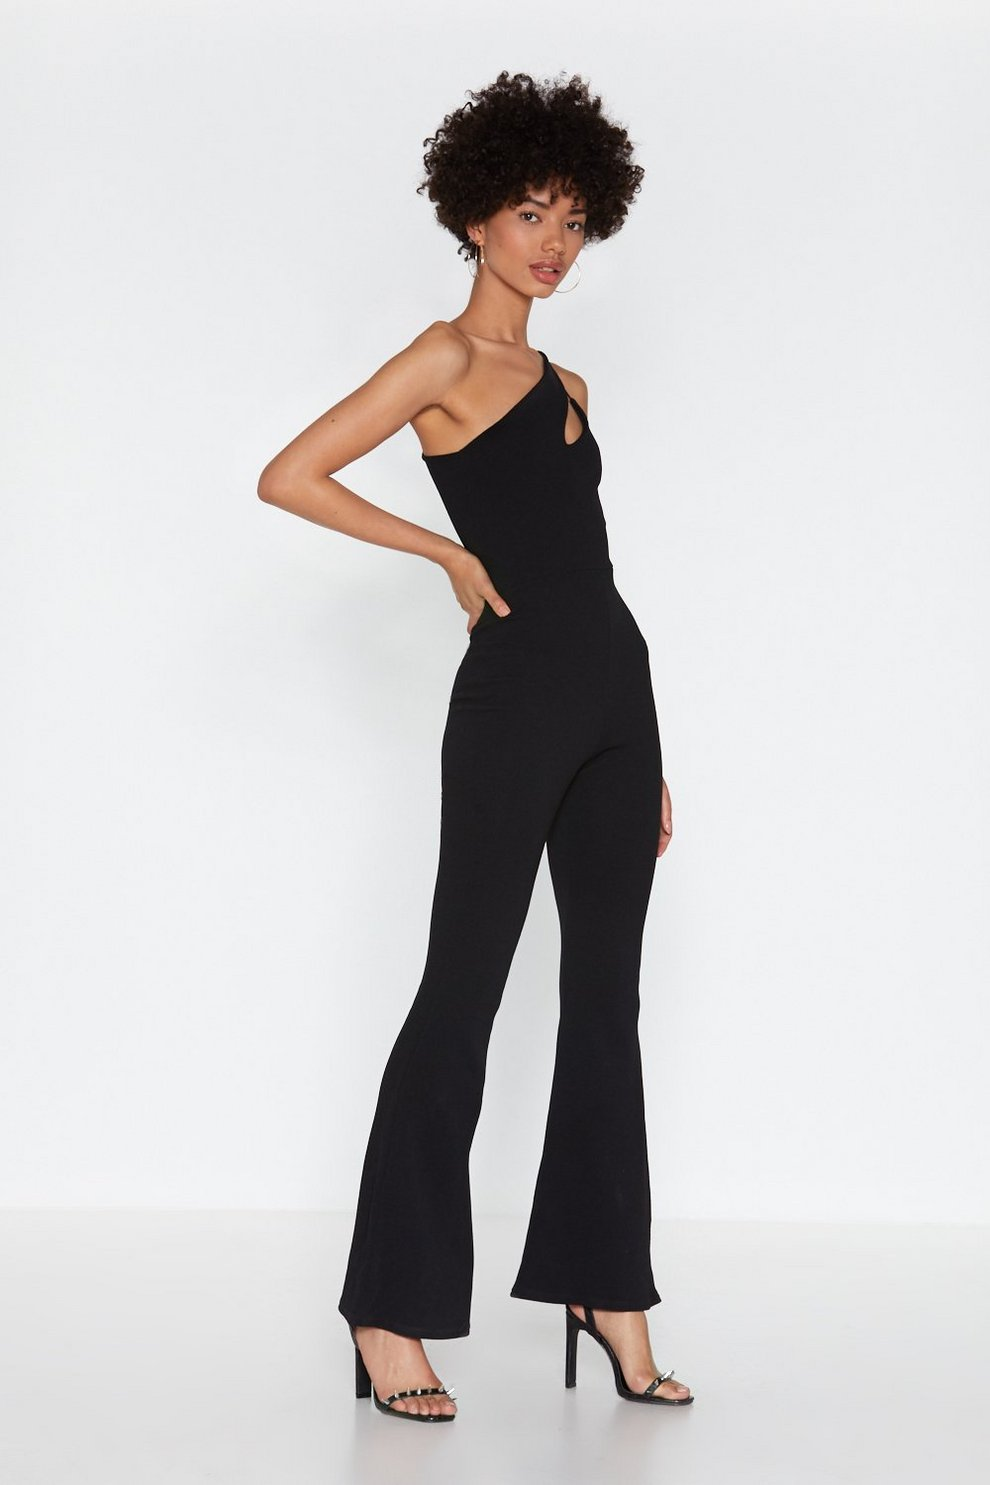 edf0c21fff4d7 The Ins and Cut-Outs One Shoulder Jumpsuit